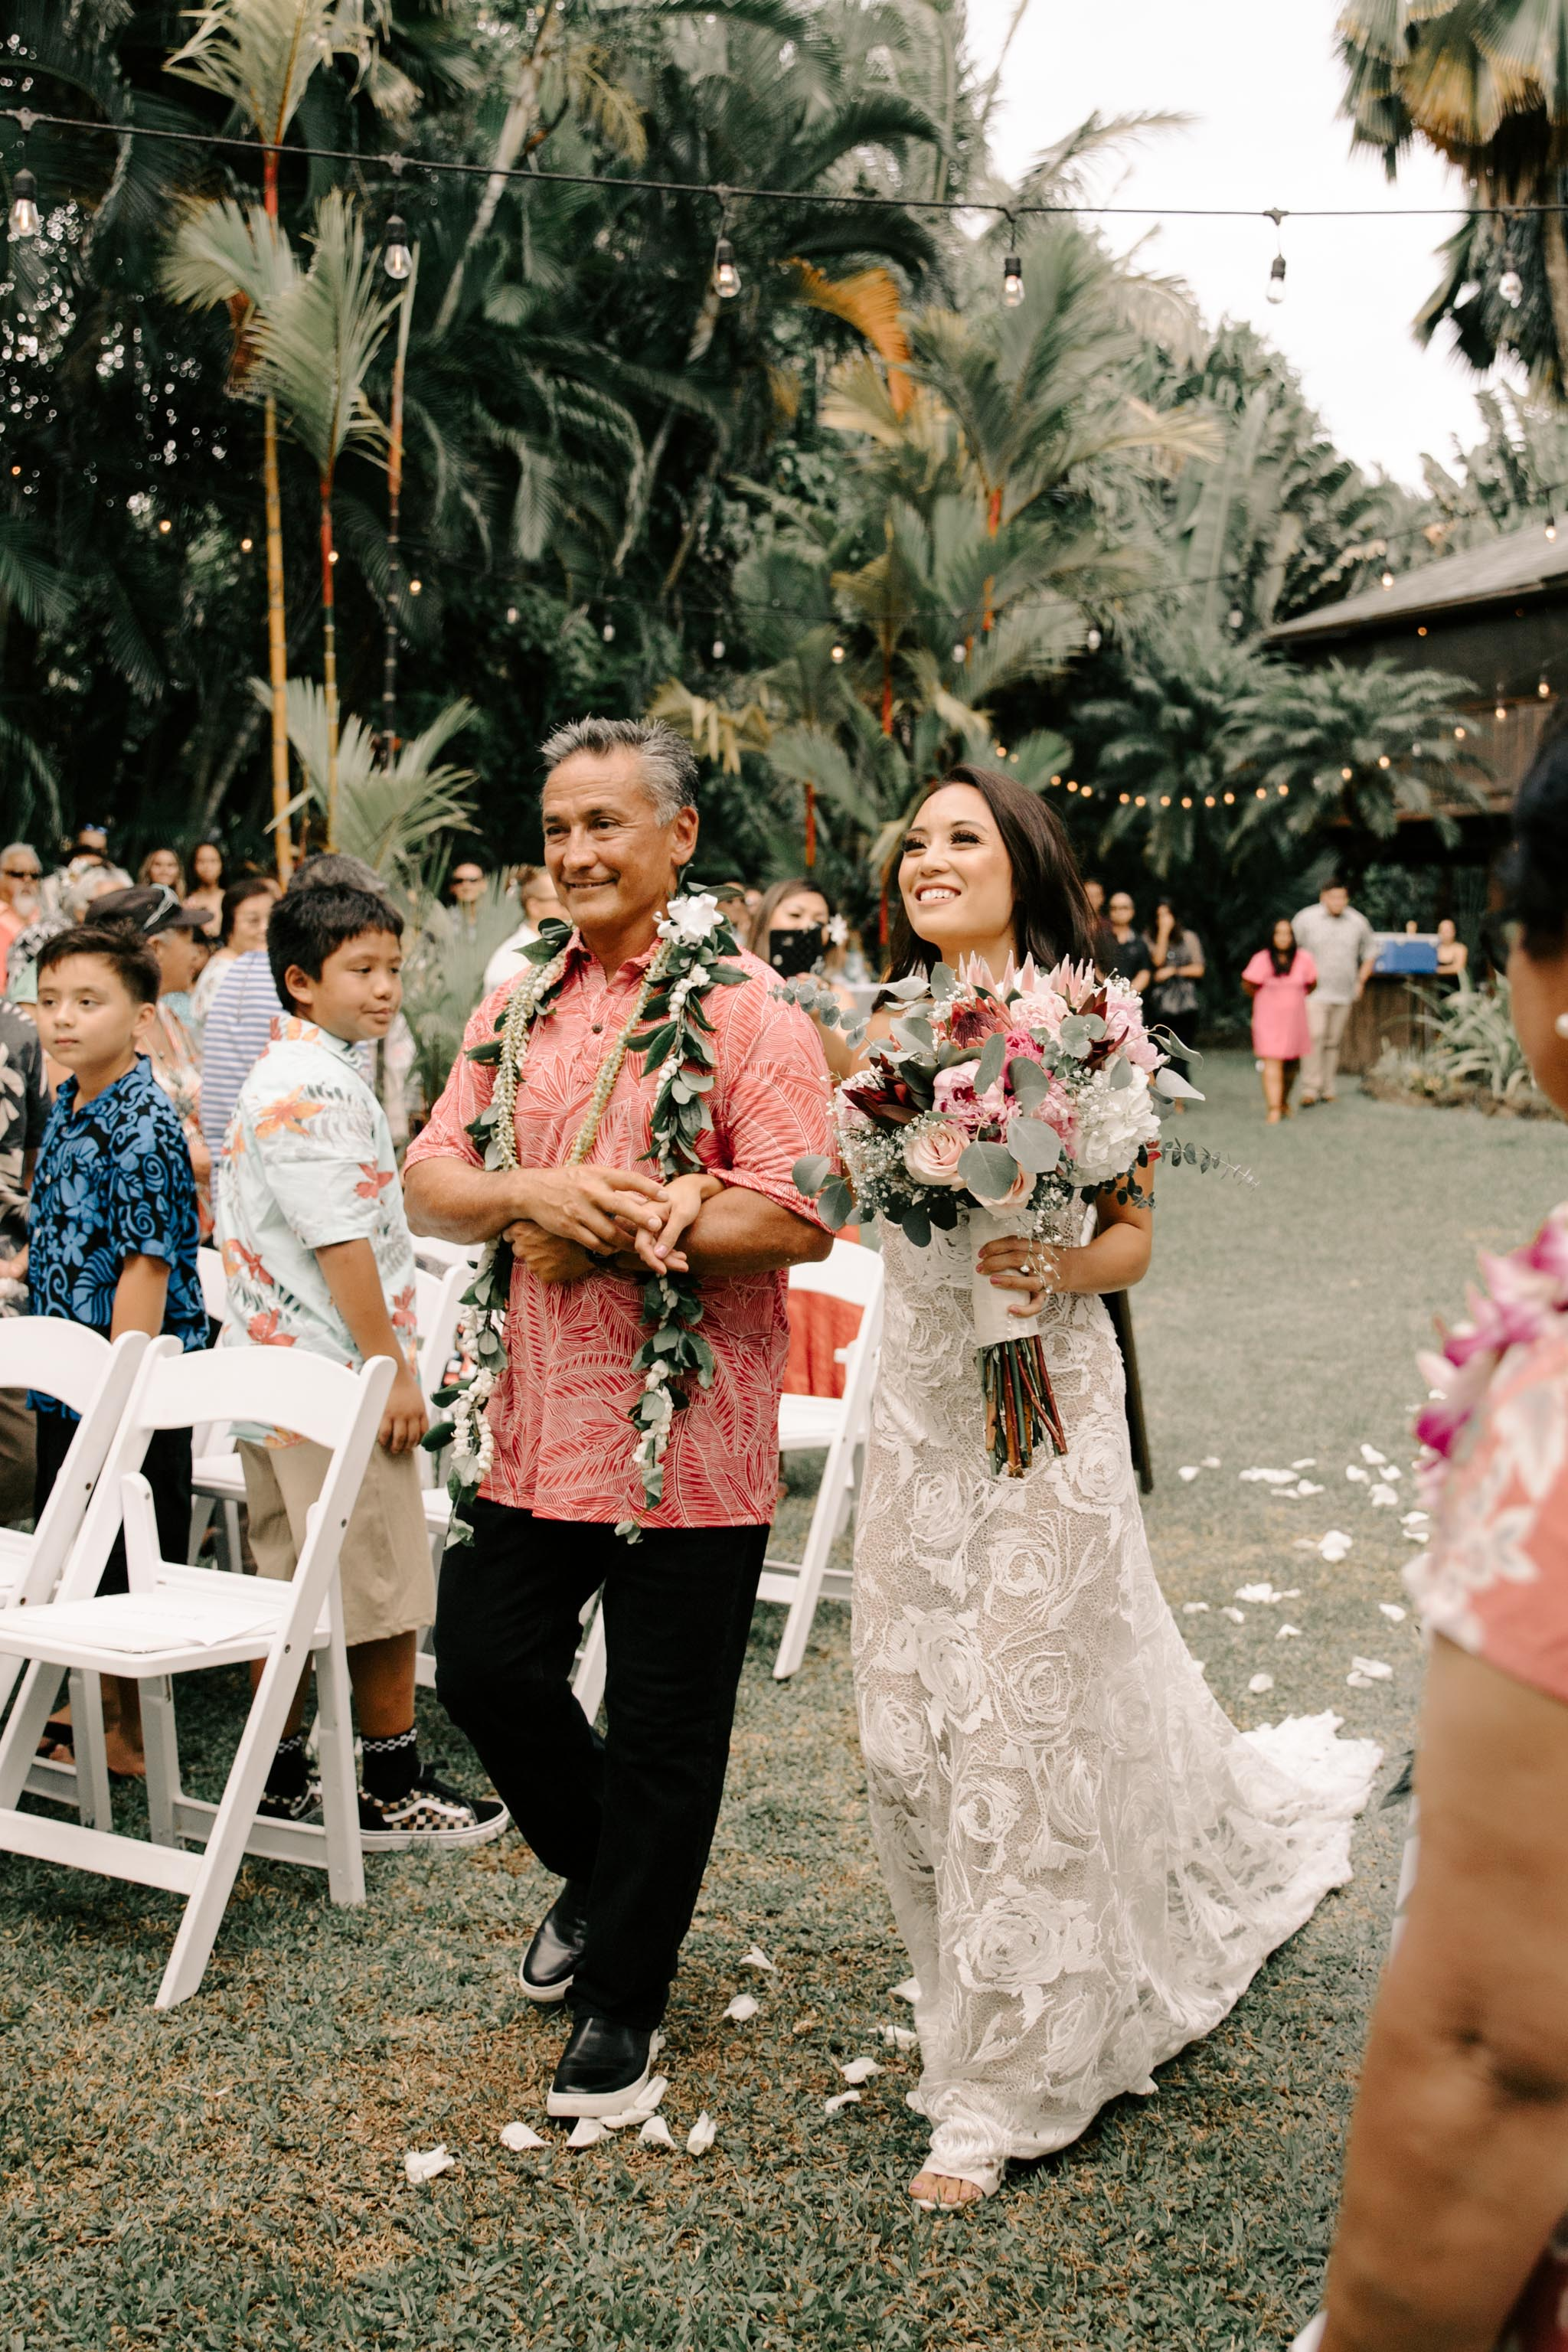 Father walking his daughter down the aisle - Hale Koa Phineas Estate Wedding By Oahu Wedding Photographer Desiree Leilani